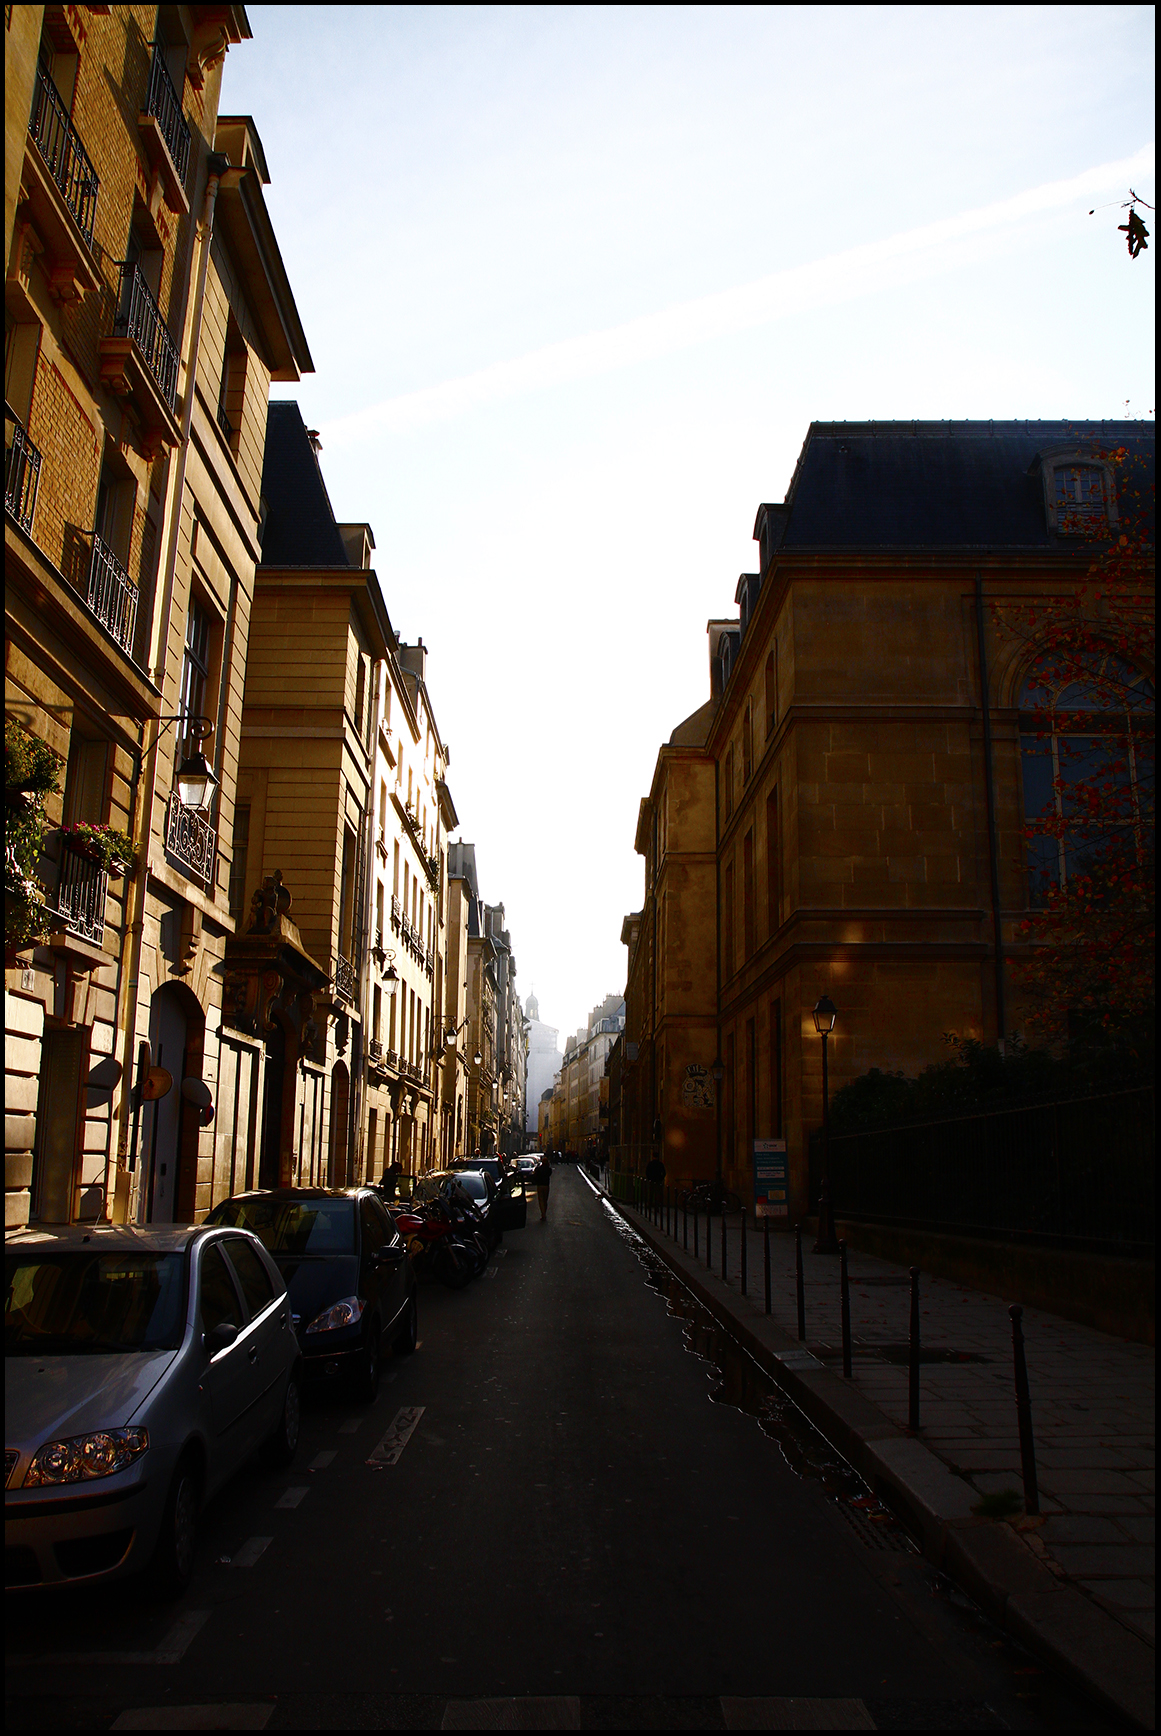 Tuukka13 - The Sunny Streets and Walls of Paris 11-2011 - 3